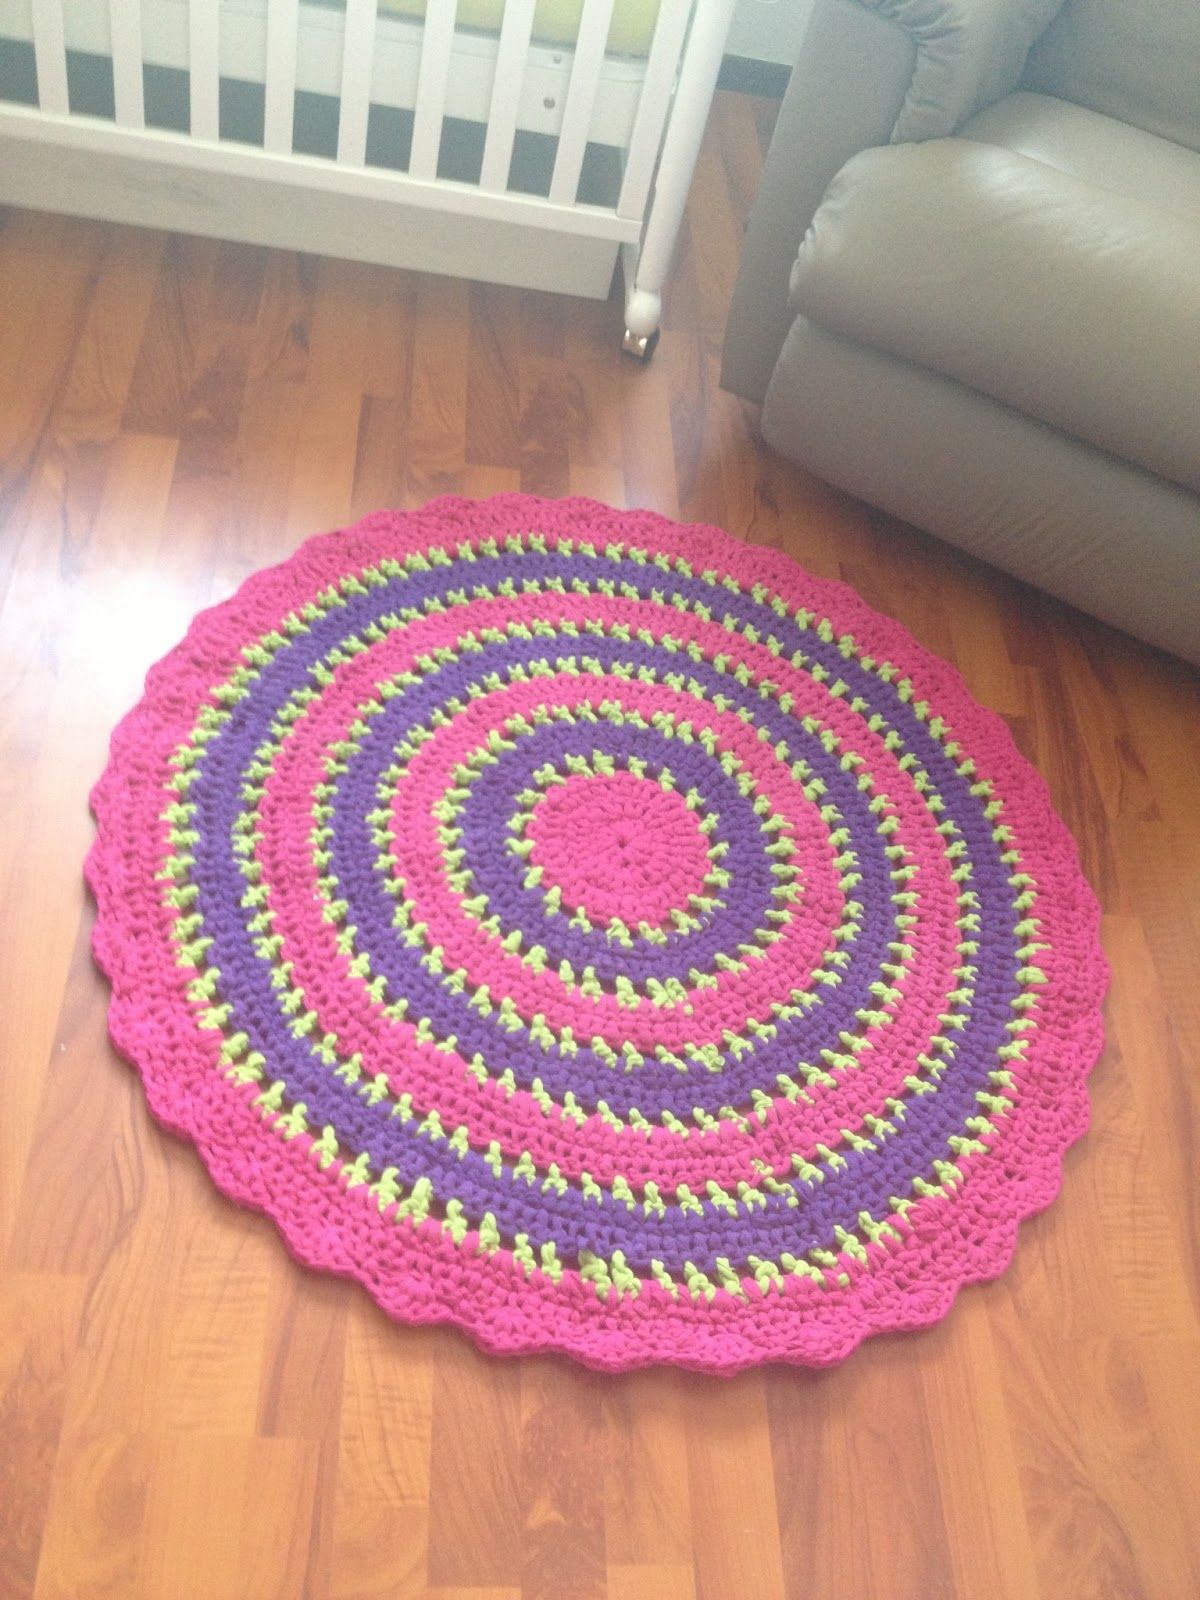 A Crocheted Rug Made From Five Twin Size Jersey Sheets I